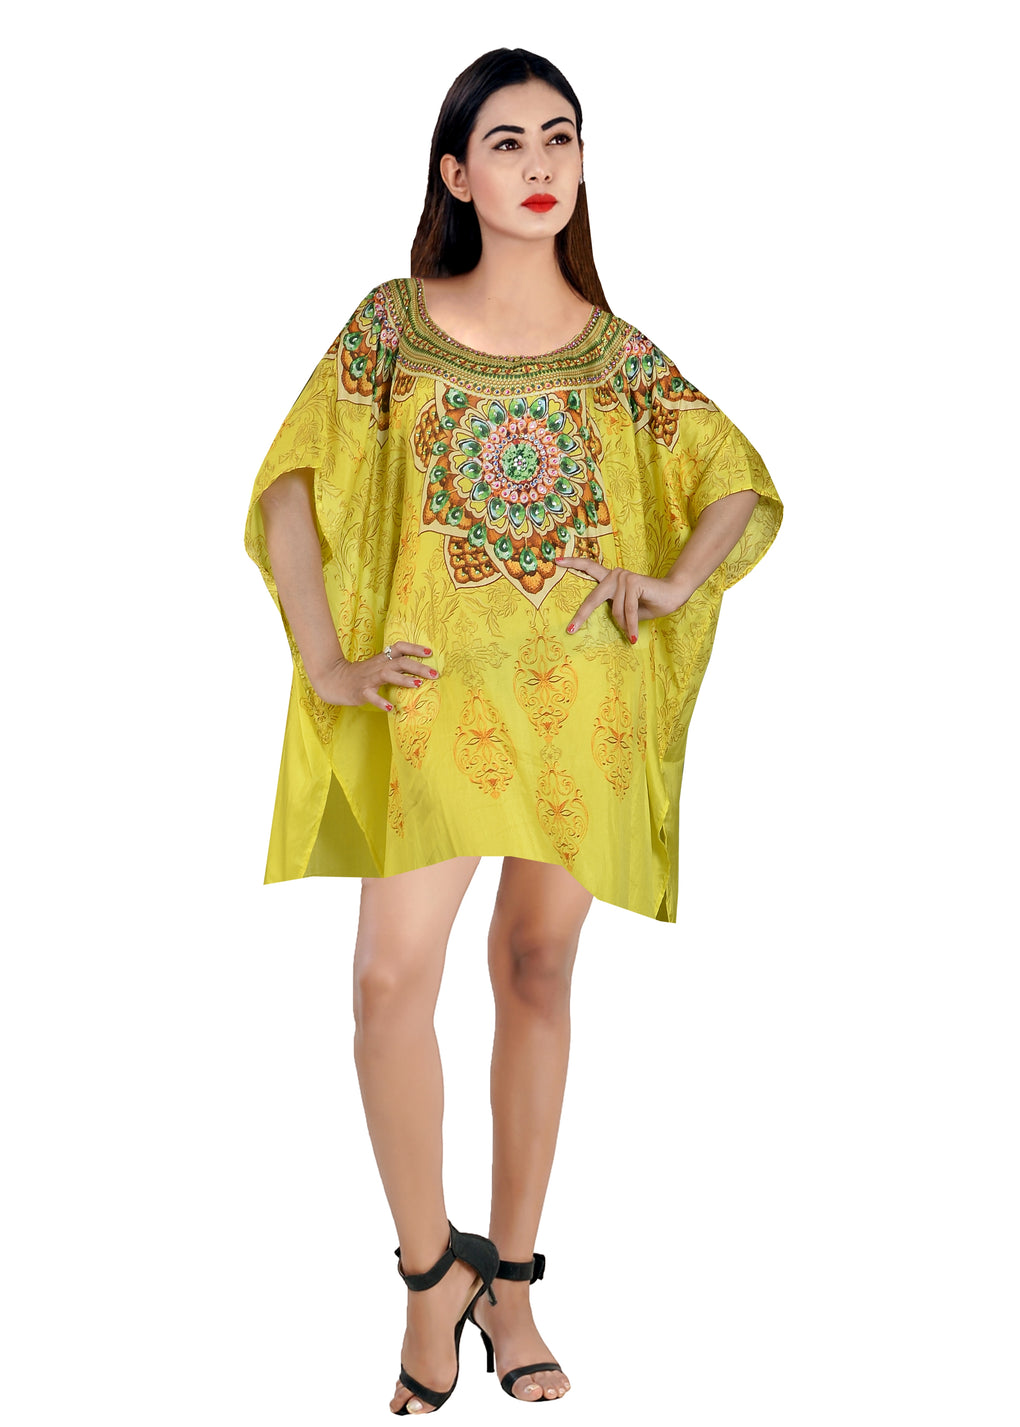 Silk caftan tunic Evening kaftan Embroidered kaftan Cruise wear kaftan Lightweight kaftan Short Swim wear kaftan - Silk kaftan